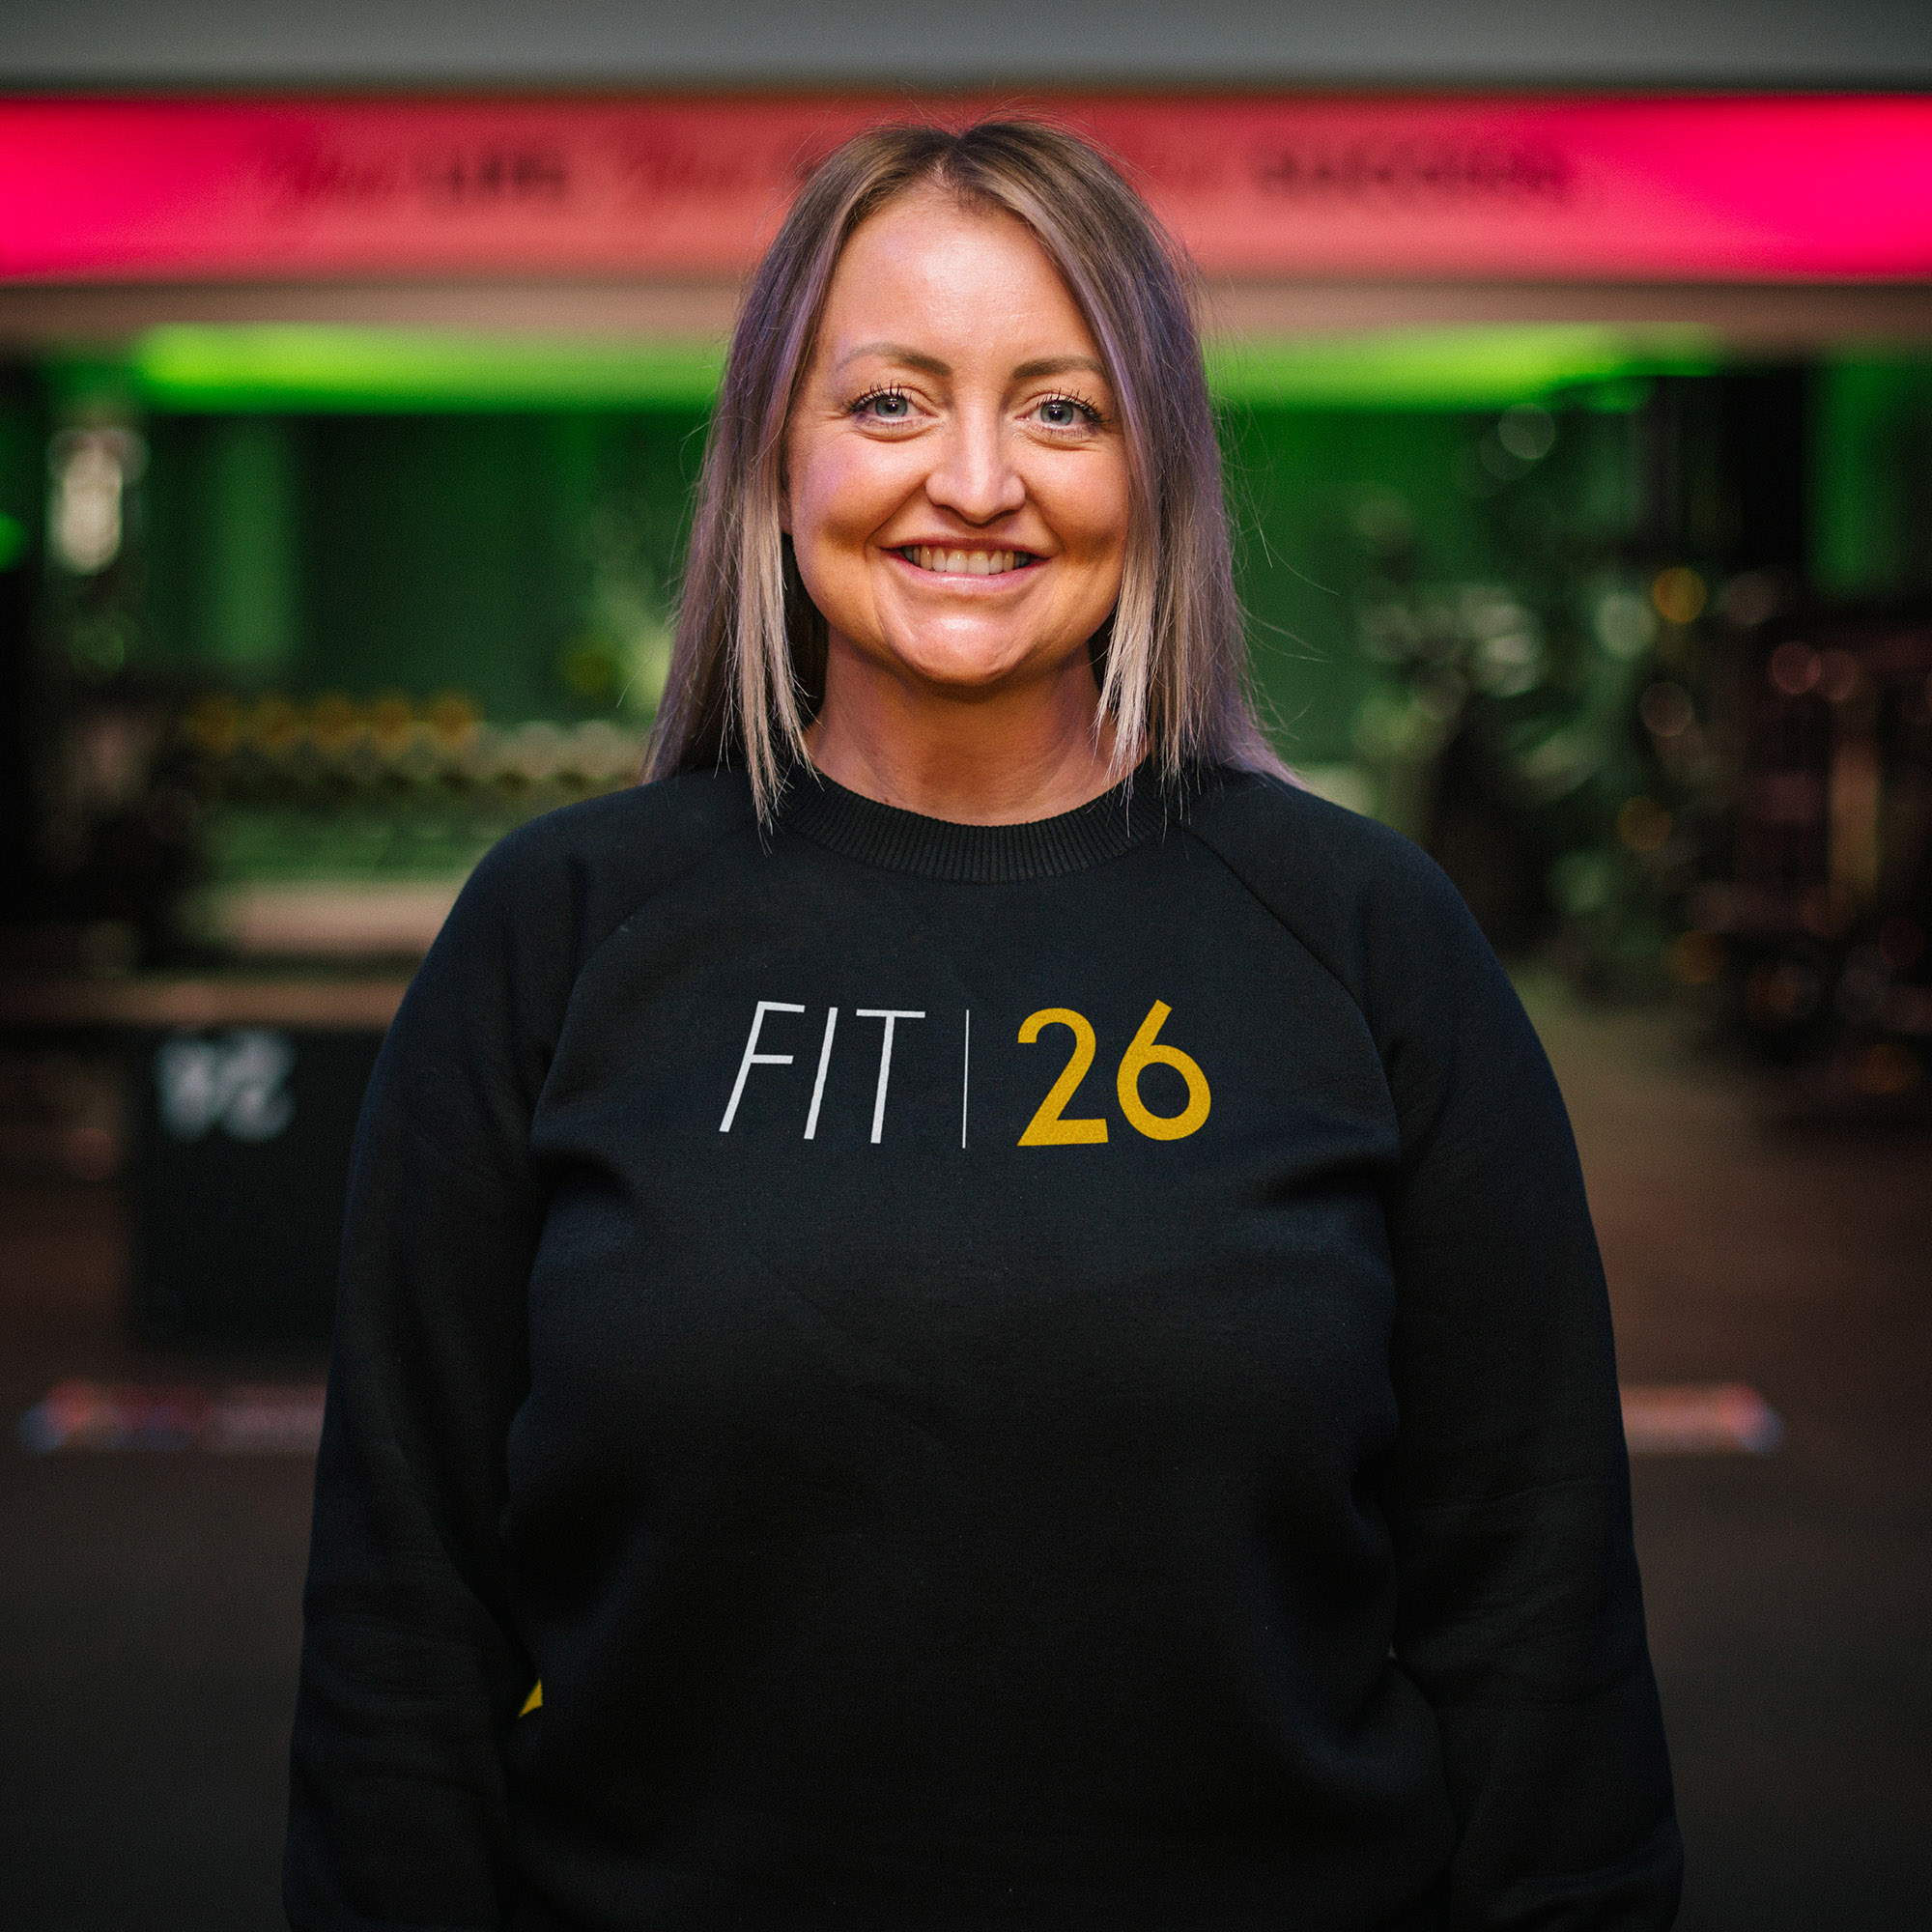 Fit26 Personal Trainer Rachael